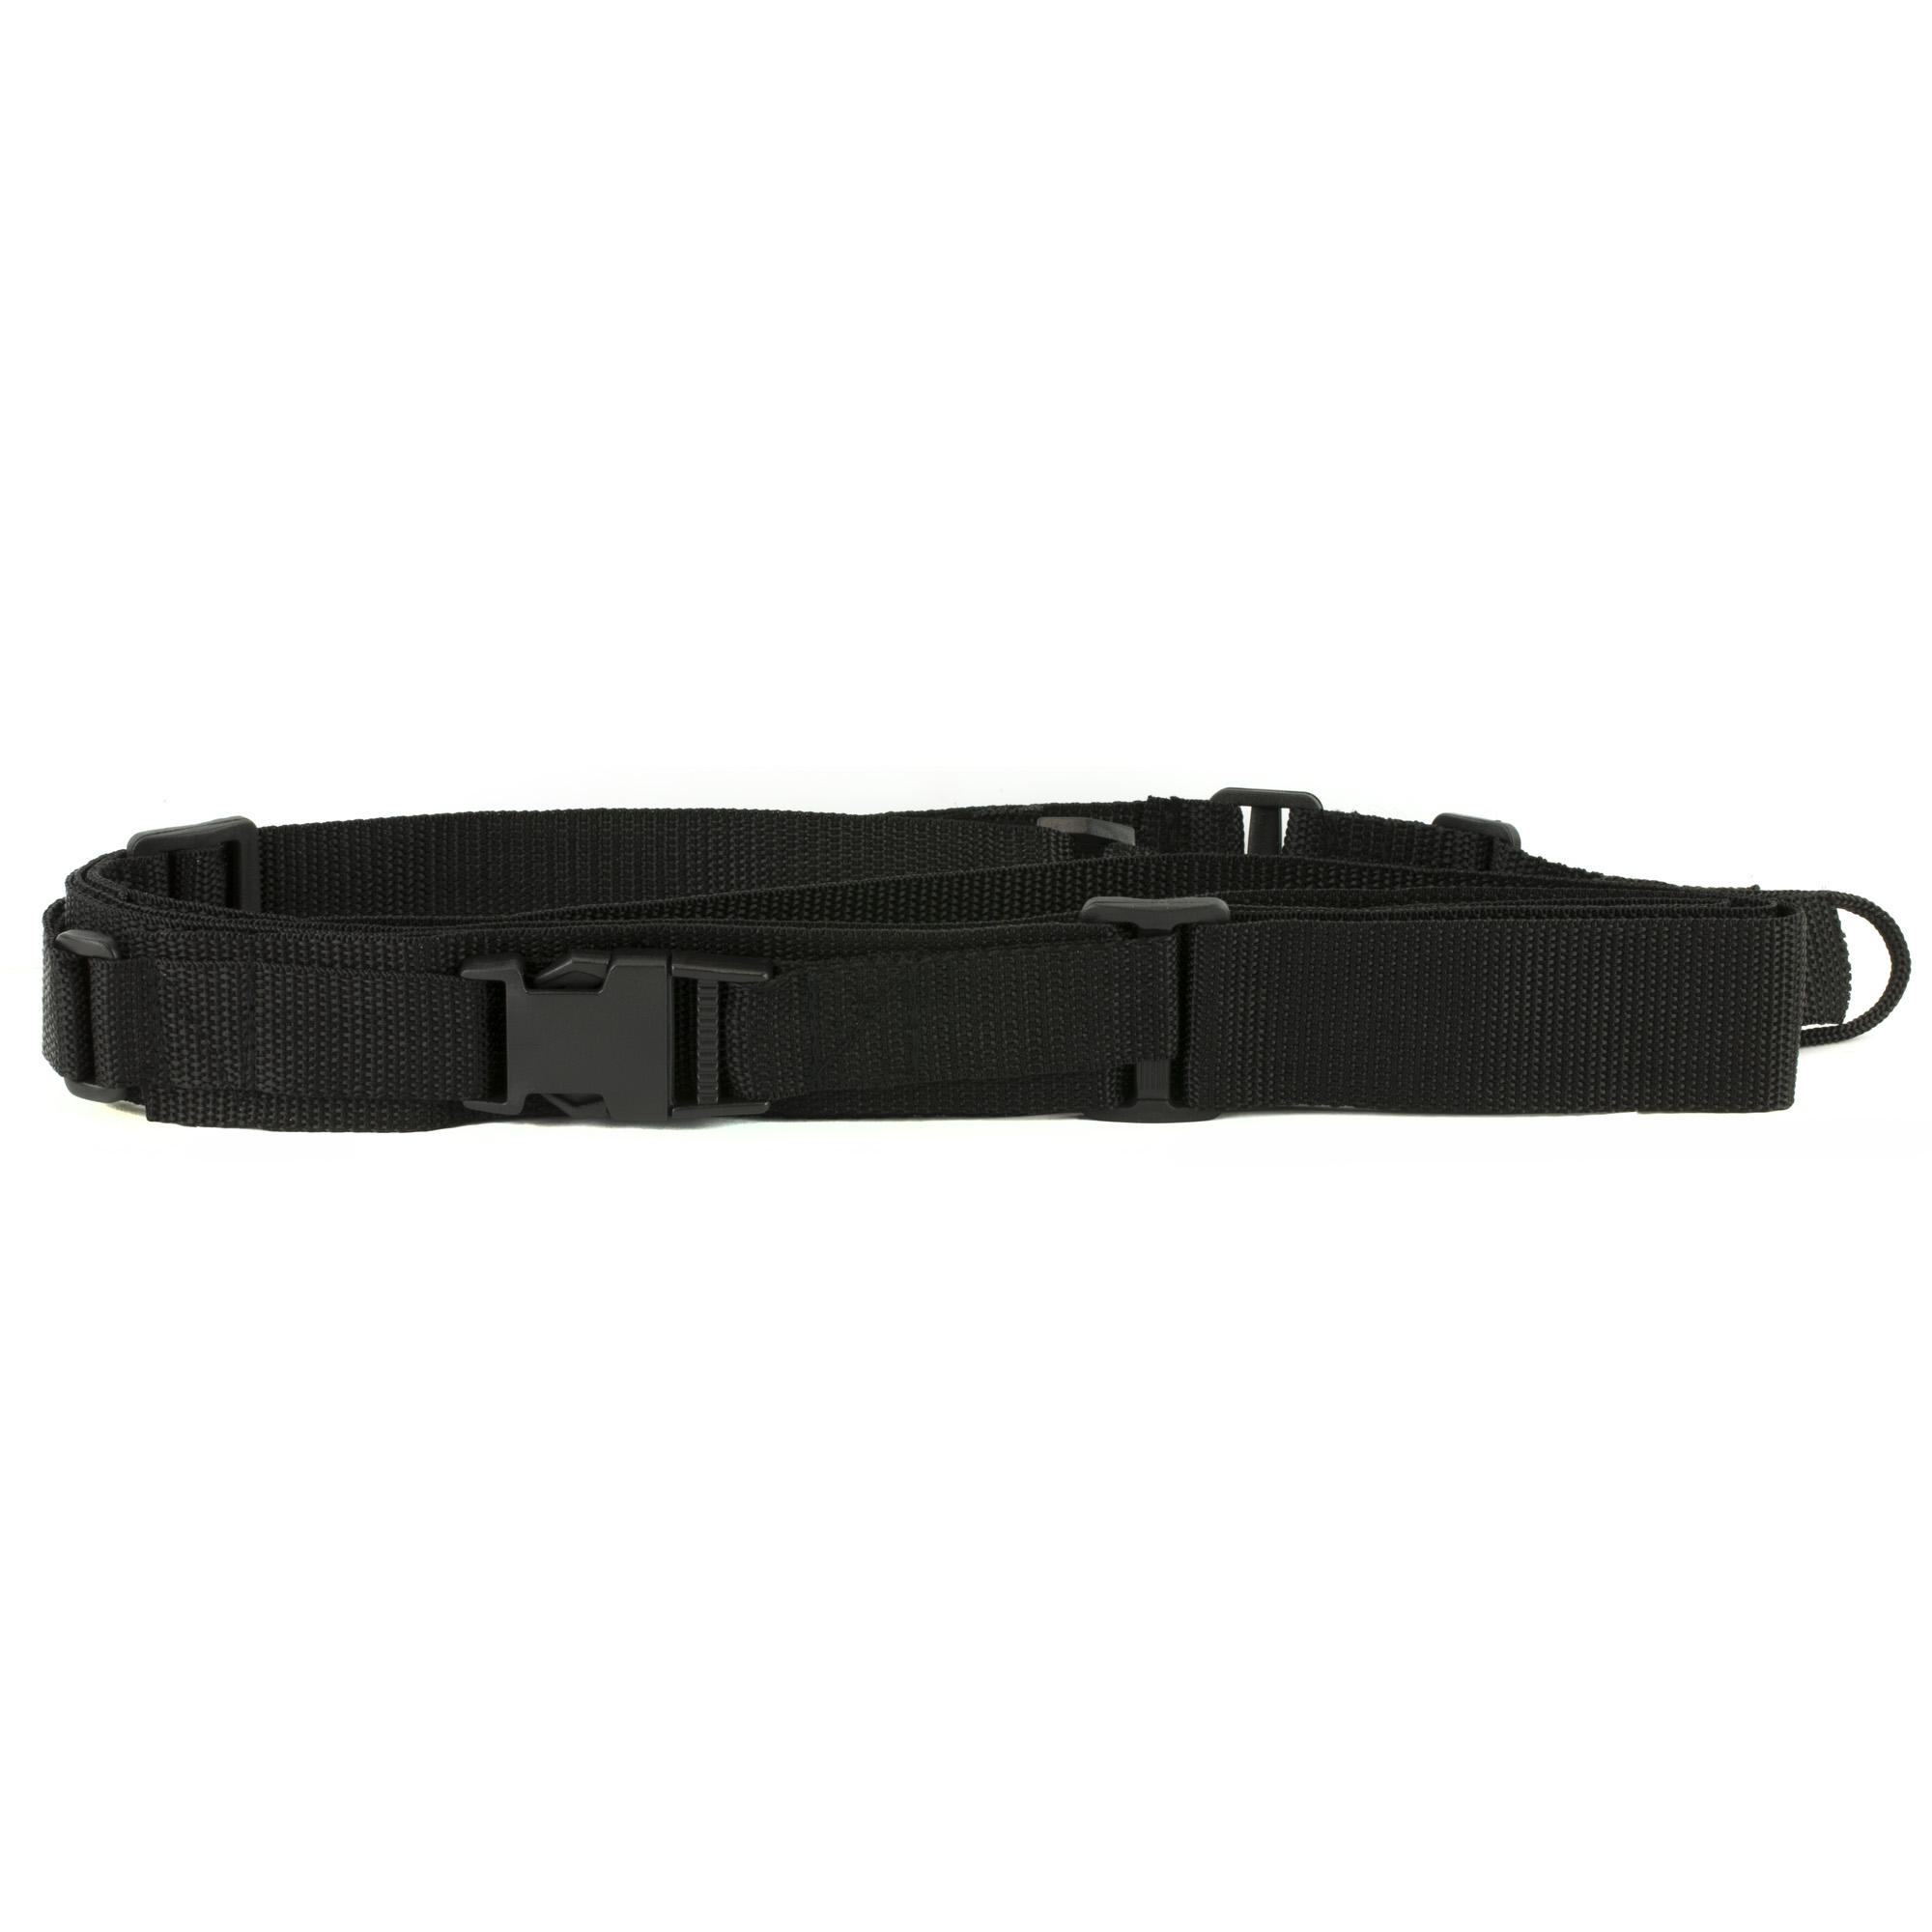 3 Point tactical sling made by BullDog.